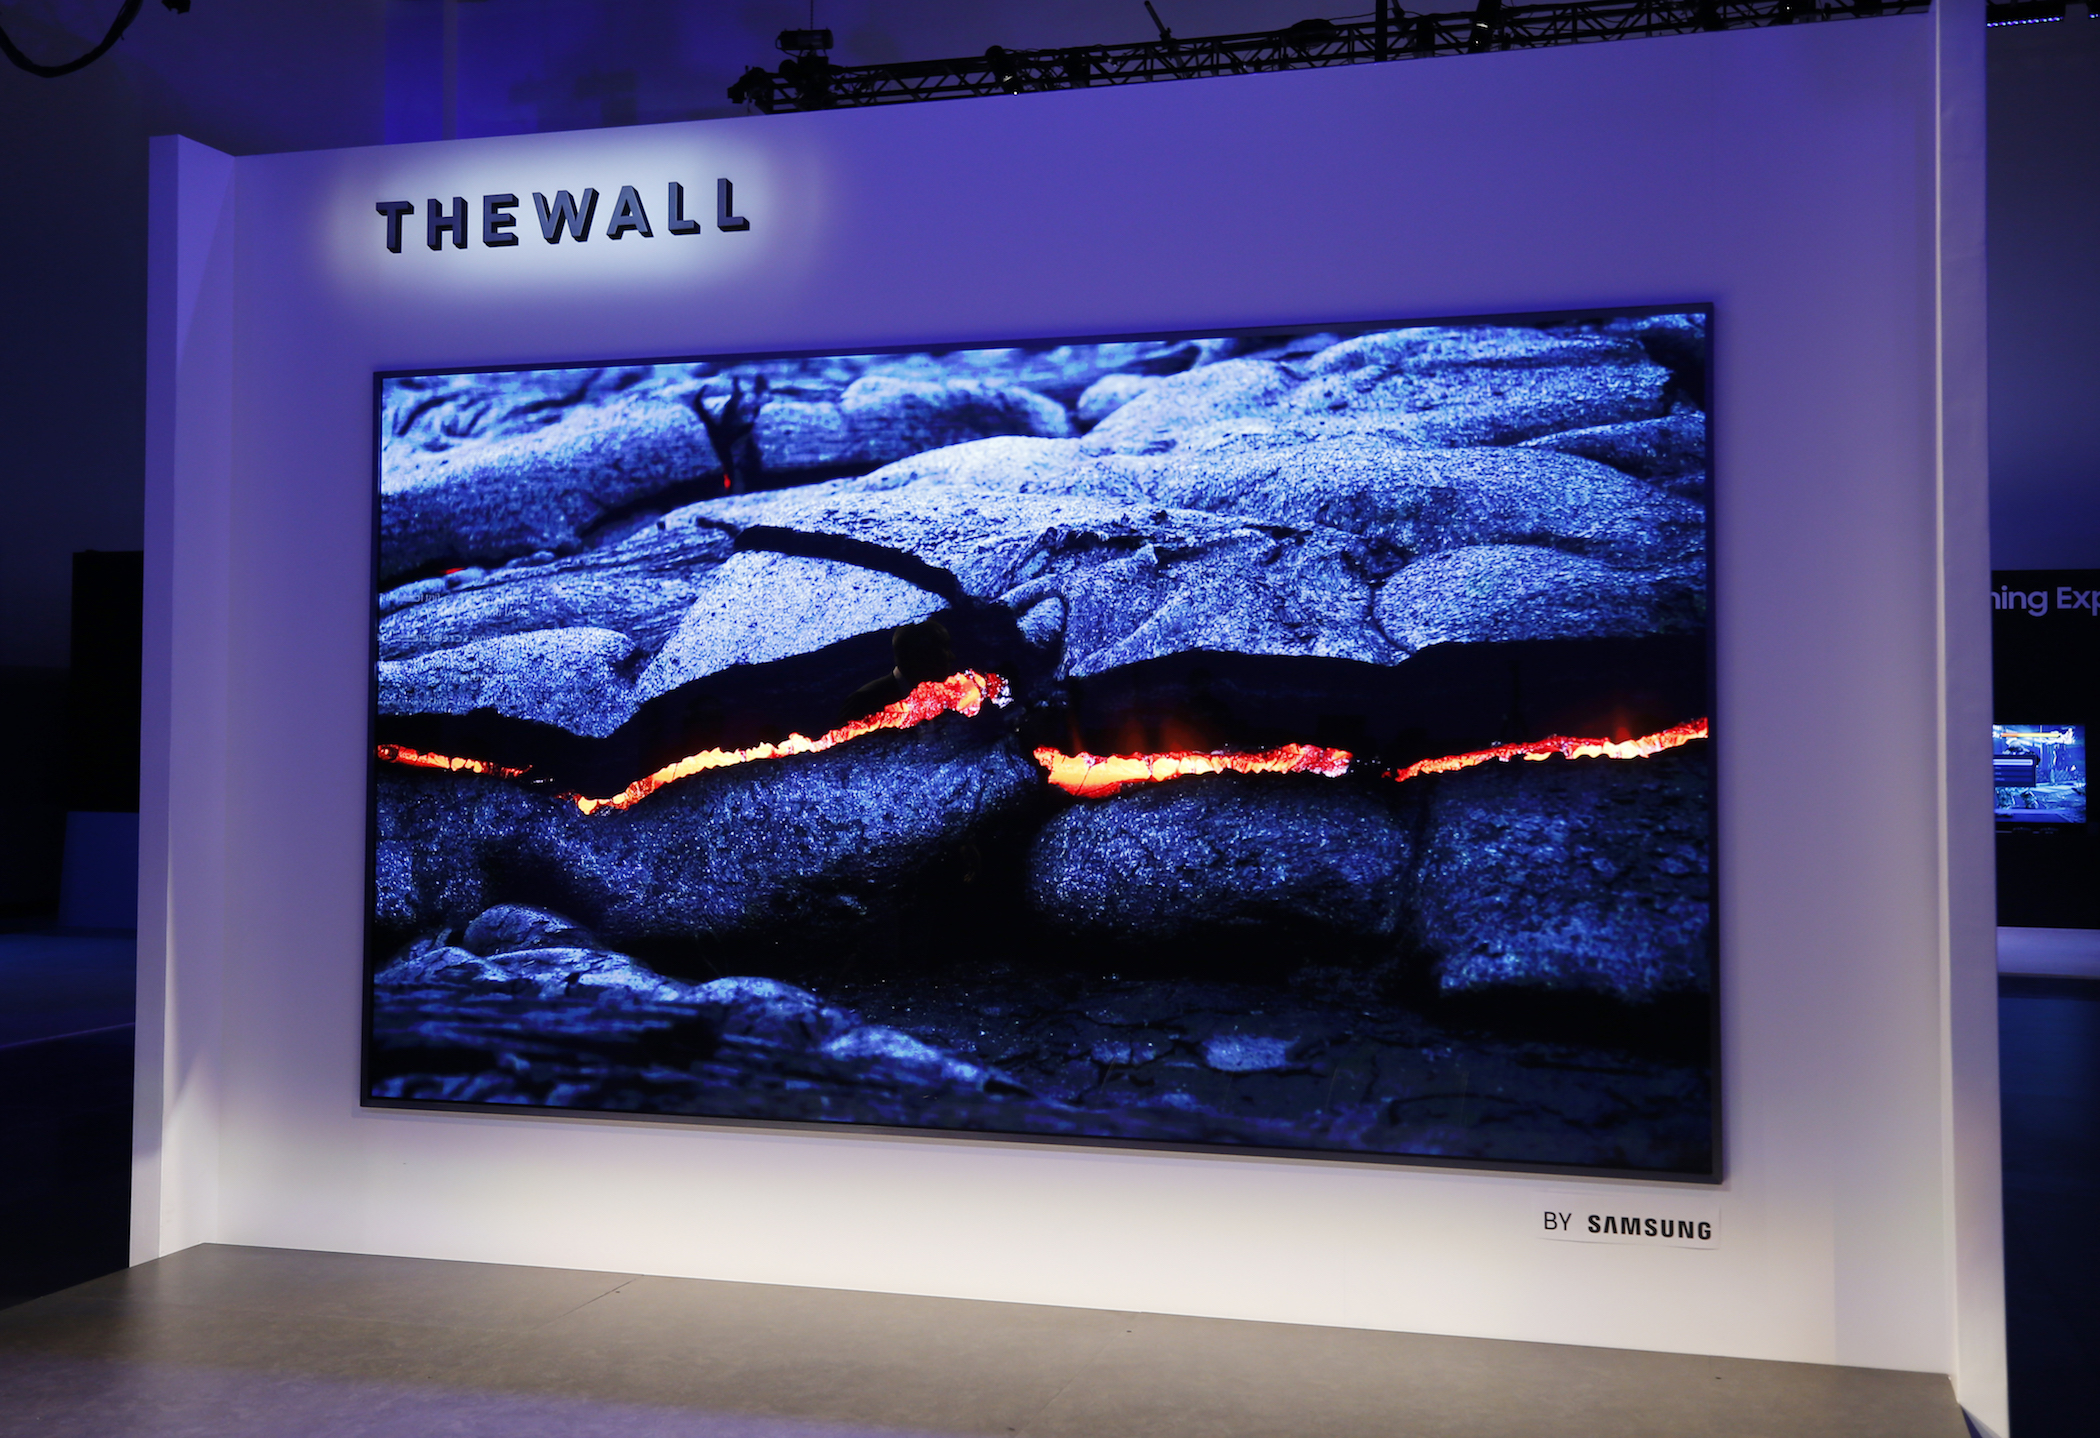 The-Wall-Modular-MicroLED-146-inch-TV-21